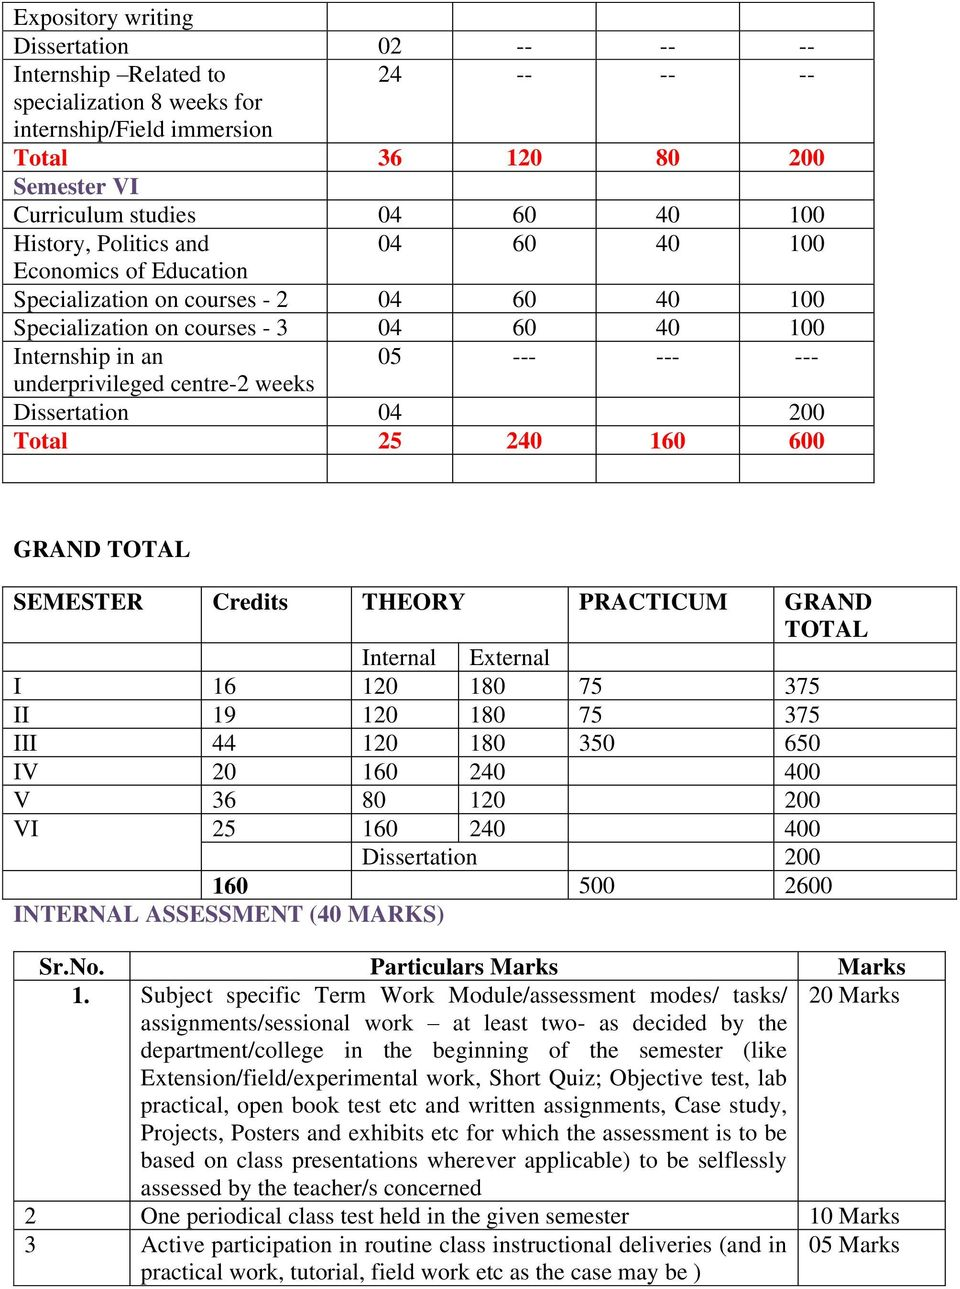 centre-2 weeks Dissertation 04 200 Total 25 240 160 600 GRAND TOTAL SEMESTER Credits THEORY PRACTICUM GRAND TOTAL Internal External I 16 120 180 75 375 II 19 120 180 75 375 III 44 120 180 350 650 IV